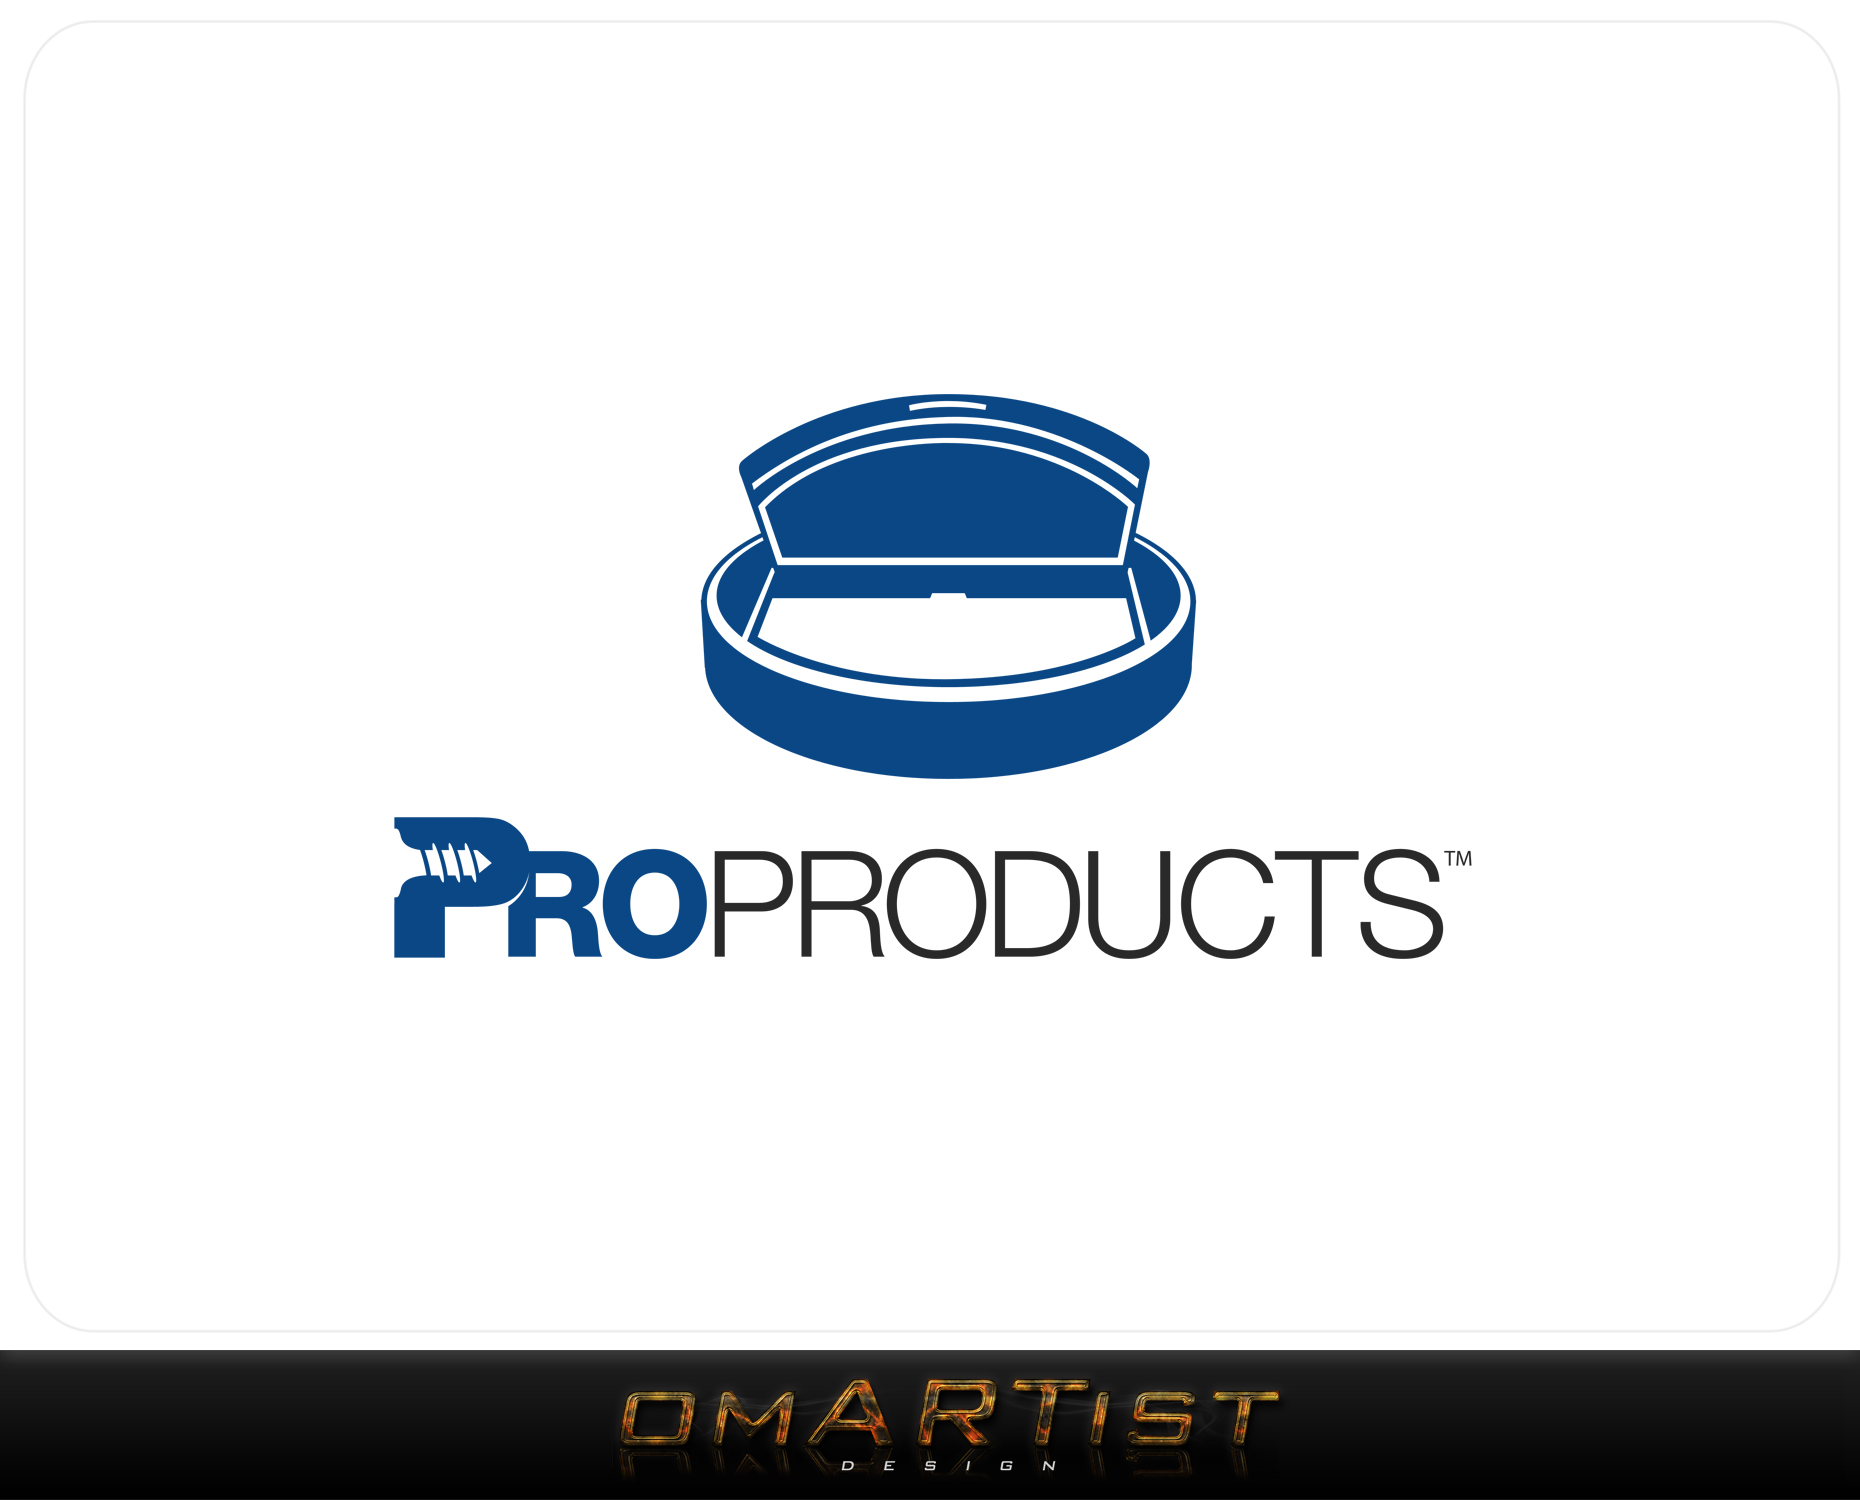 Logo Design by omARTist - Entry No. 56 in the Logo Design Contest Fun yet Professional Logo Design for ProProducts.